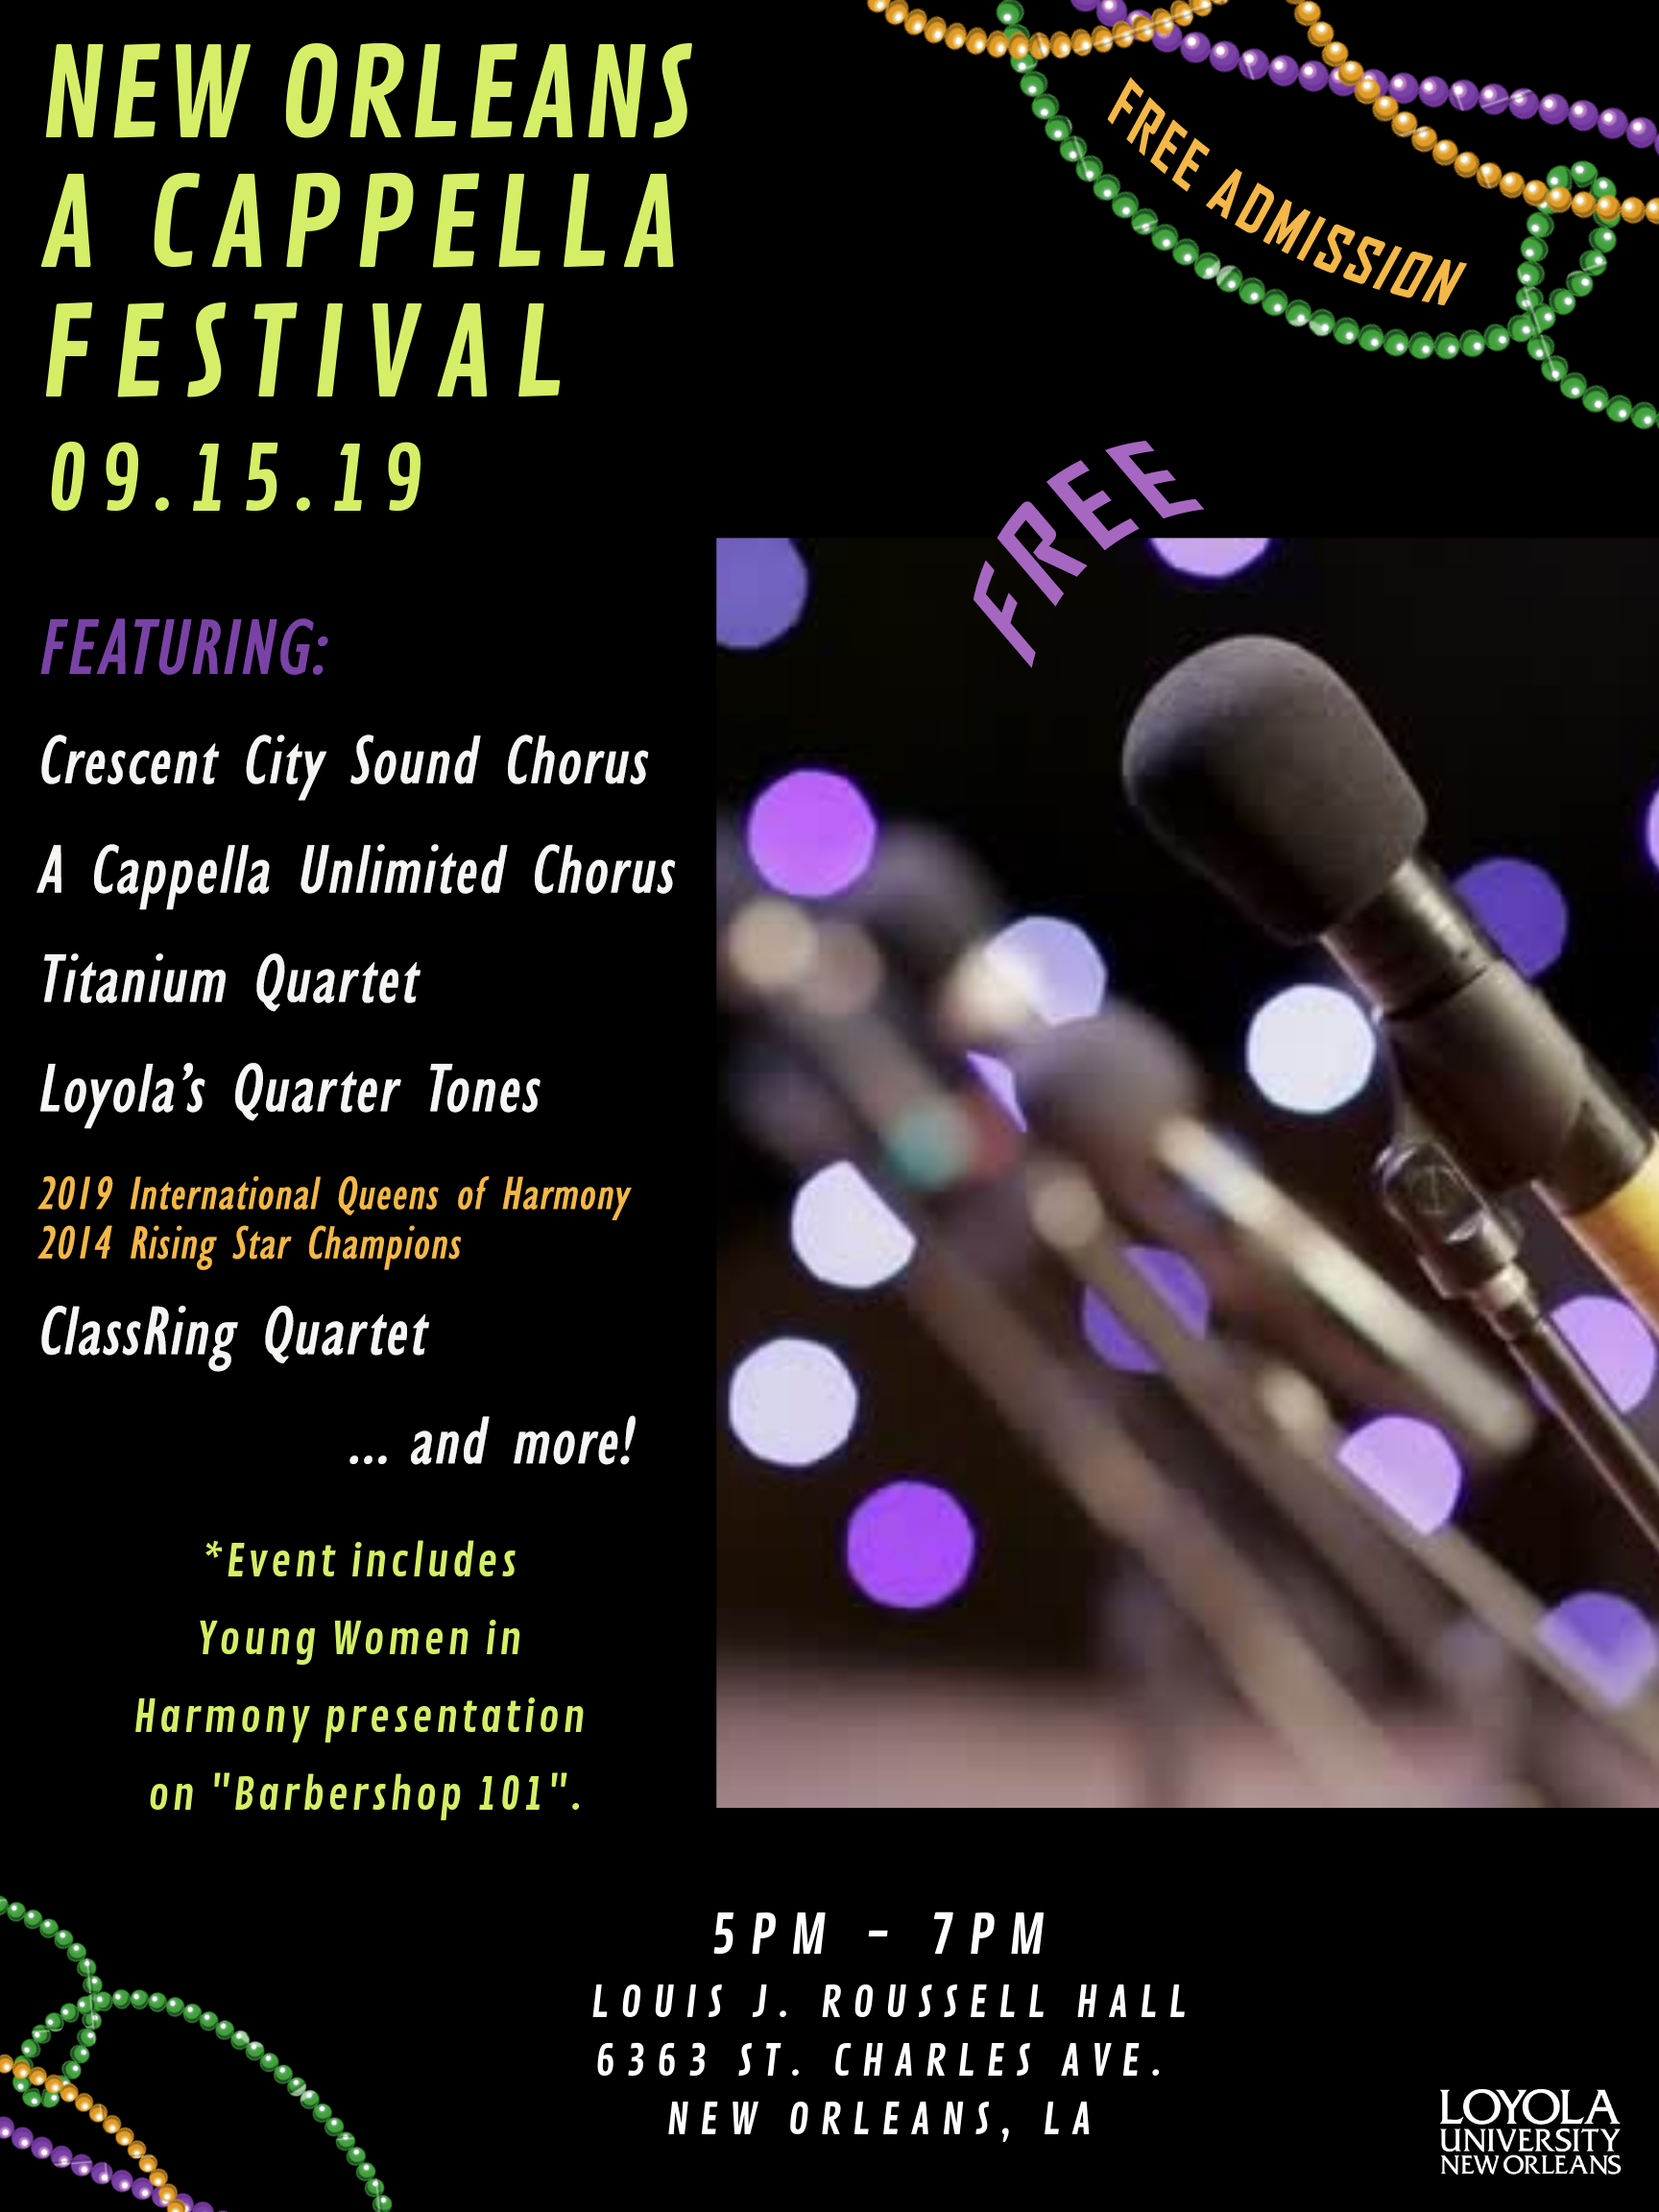 New Orleans A Cappella Festival 2019